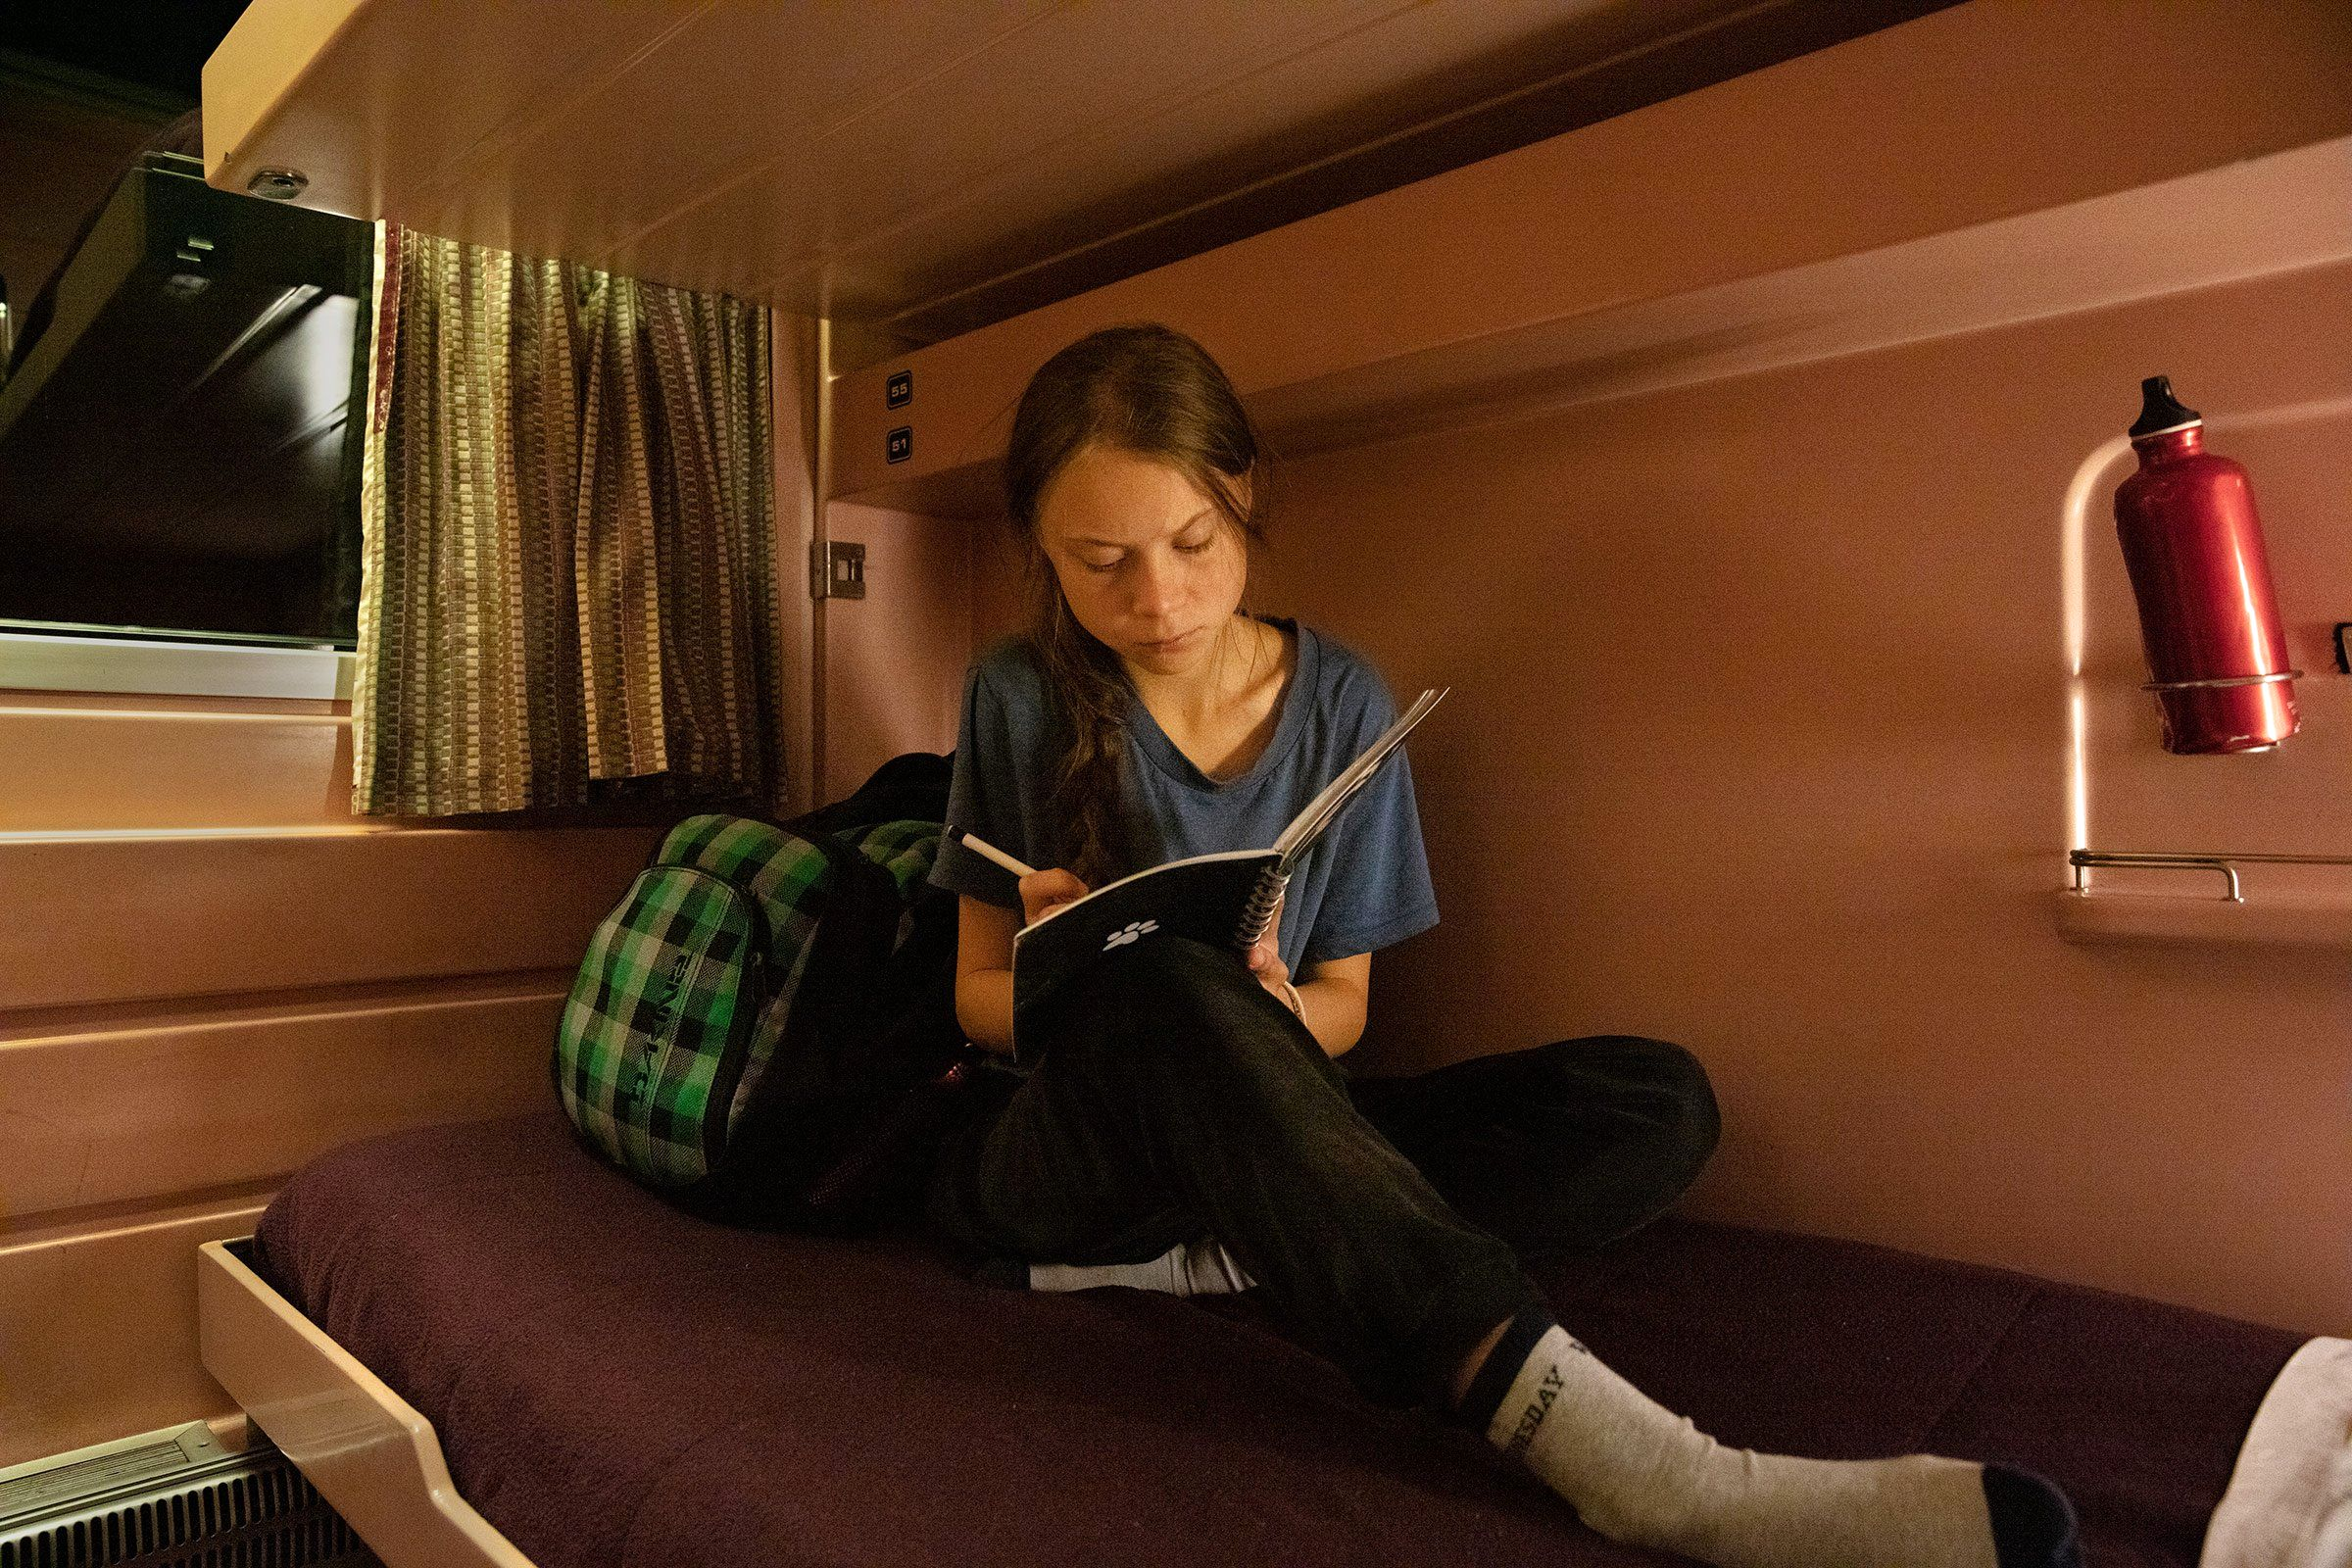 Greta Thunberg writes in her journal on the train as she travels from Lisbon to Madrid for a U.N. climate conference on Dec. 5. Days later, the climate activist was named TIME's 2019 Person of the Year.